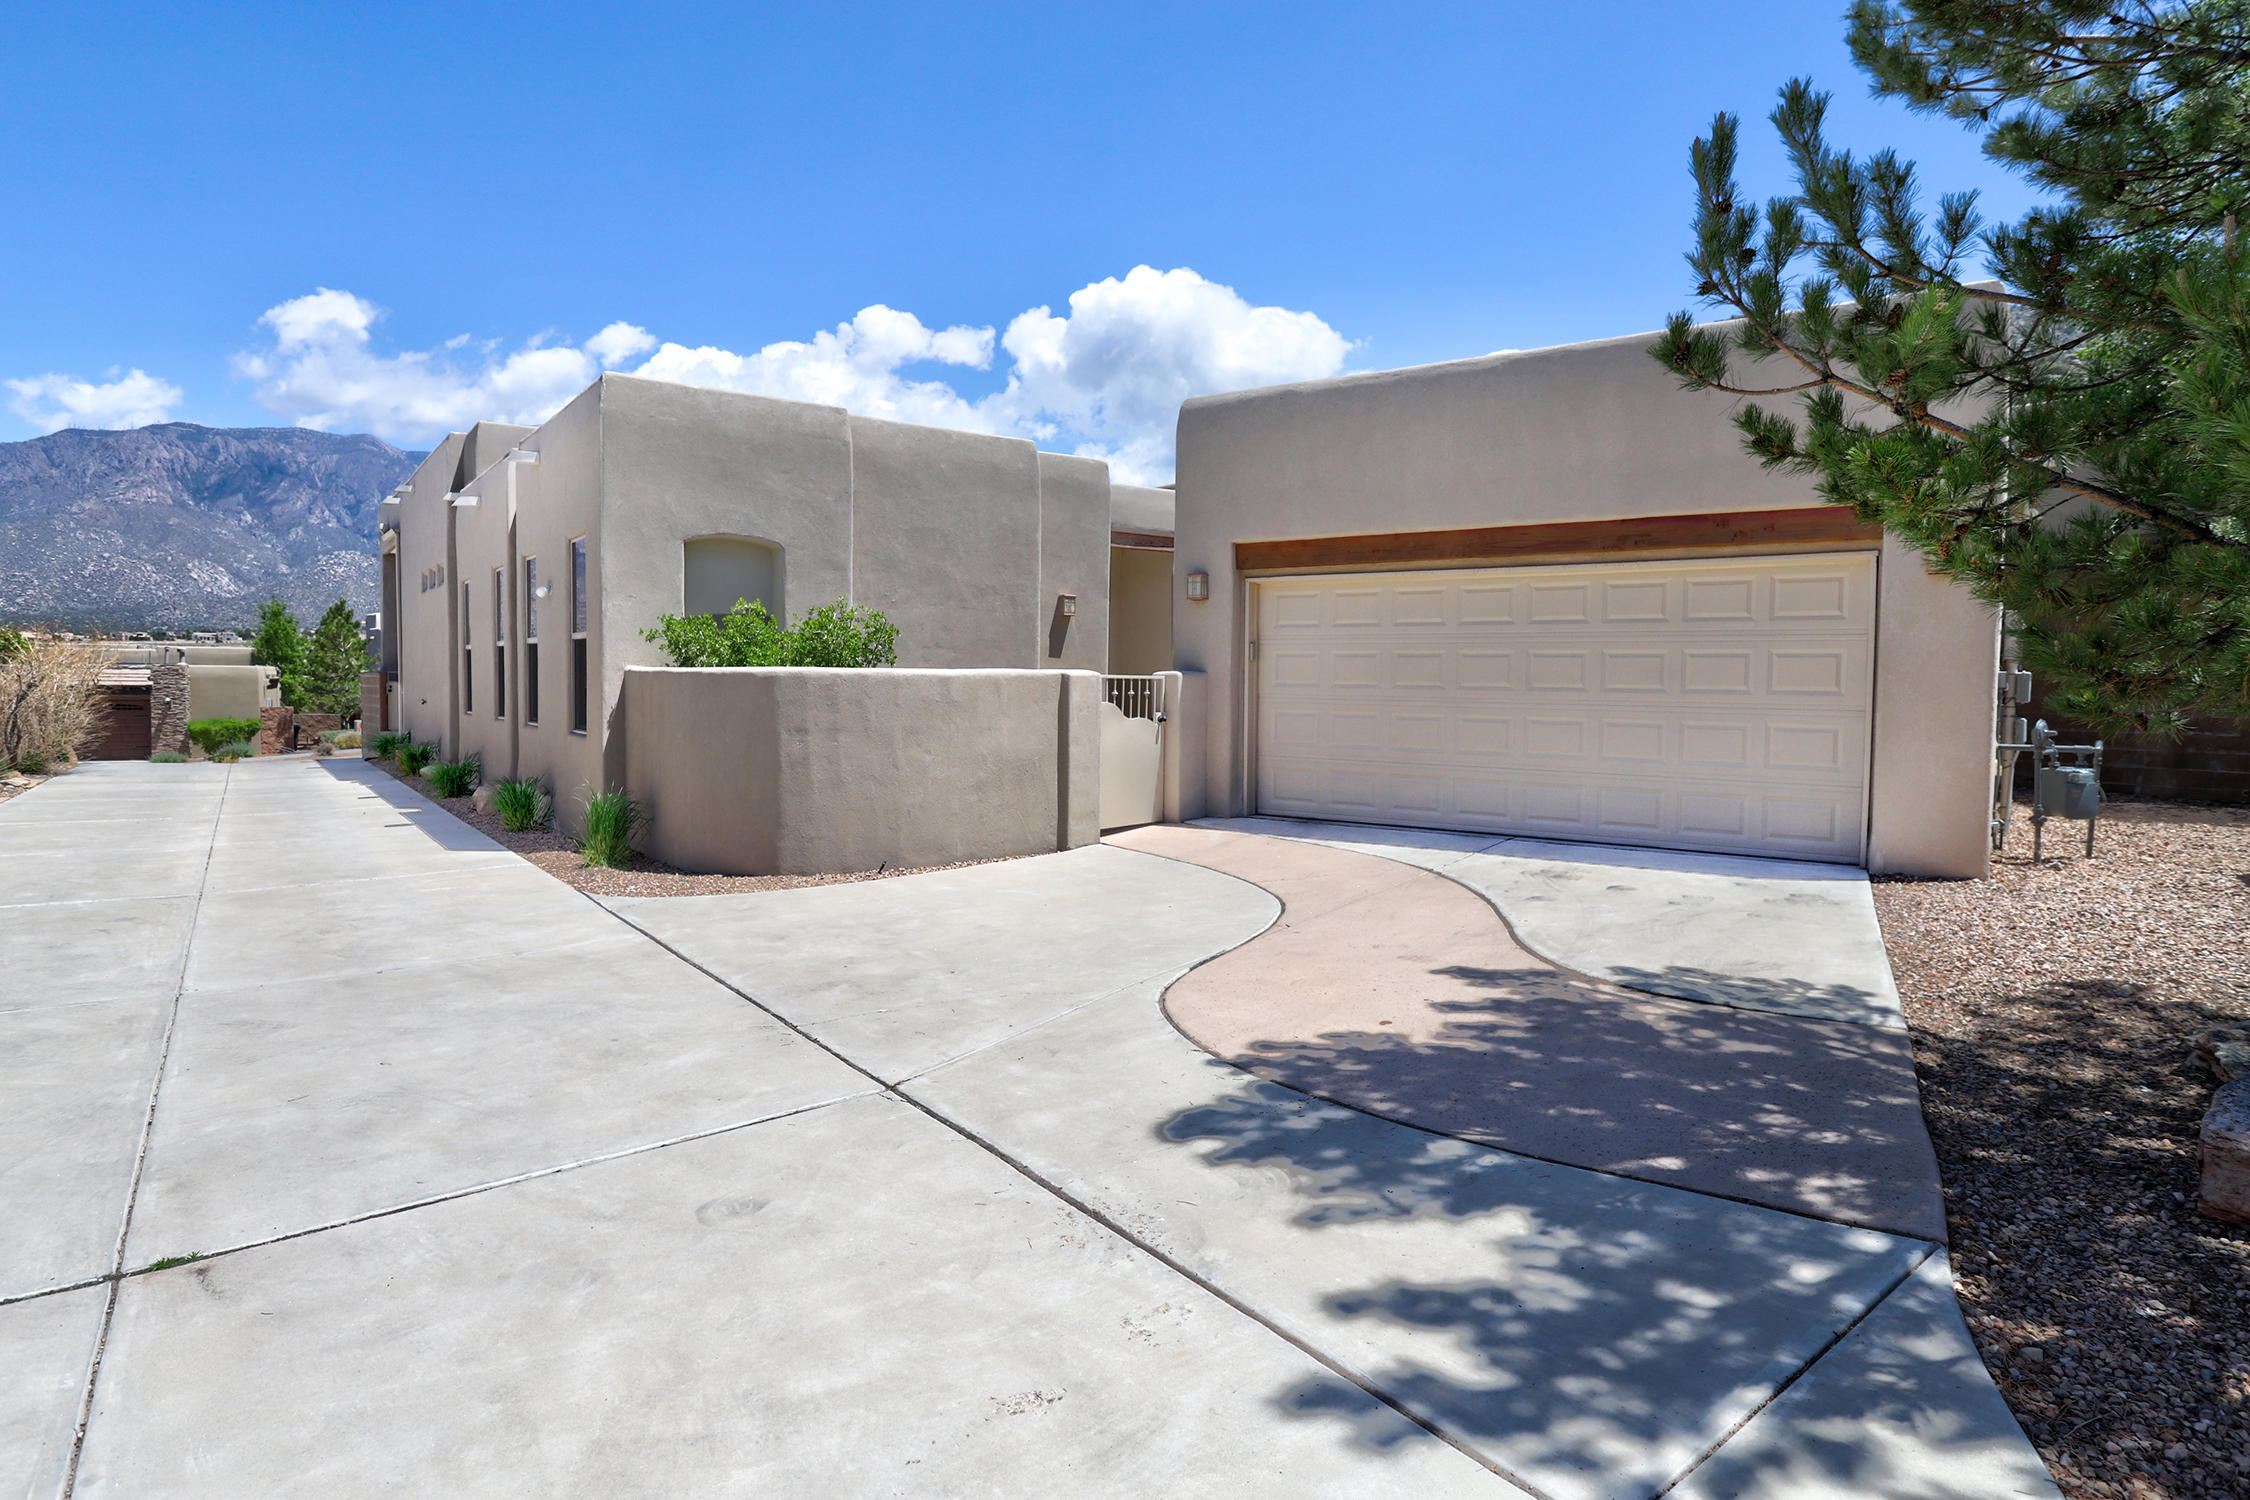 Enjoy Breathtaking Mountain and Sunset Views From This Beautiful High Desert Property! * Open Living Room/Dining Room/Kitchen Layout with a Wall of Windows Framing the Mountains * Generous Kitchen Includes Great Storage, Island, Stainless Steel Appliances, Bar Seating, and Pantry * Light Pours In Through the Windows and Skylights * Recently Installed Engineered Walnut Floors Are Beautiful! -- No Carpet! * Primary Bedroom with Views and a Spacious Bathroom with Double Vanities, Walk In Closet, Separate Shower and Soaking Tub * Enjoy the Views In the Outdoor Space Built For Entertaining with Built-In Grill, Bar Area, Water Feature, and Fire Pit * Two Additional Bedrooms Plus a Fourth Bedroom That Could be a Great Office or Den * Oversized Two Car Garage with Workshop/Storage Area